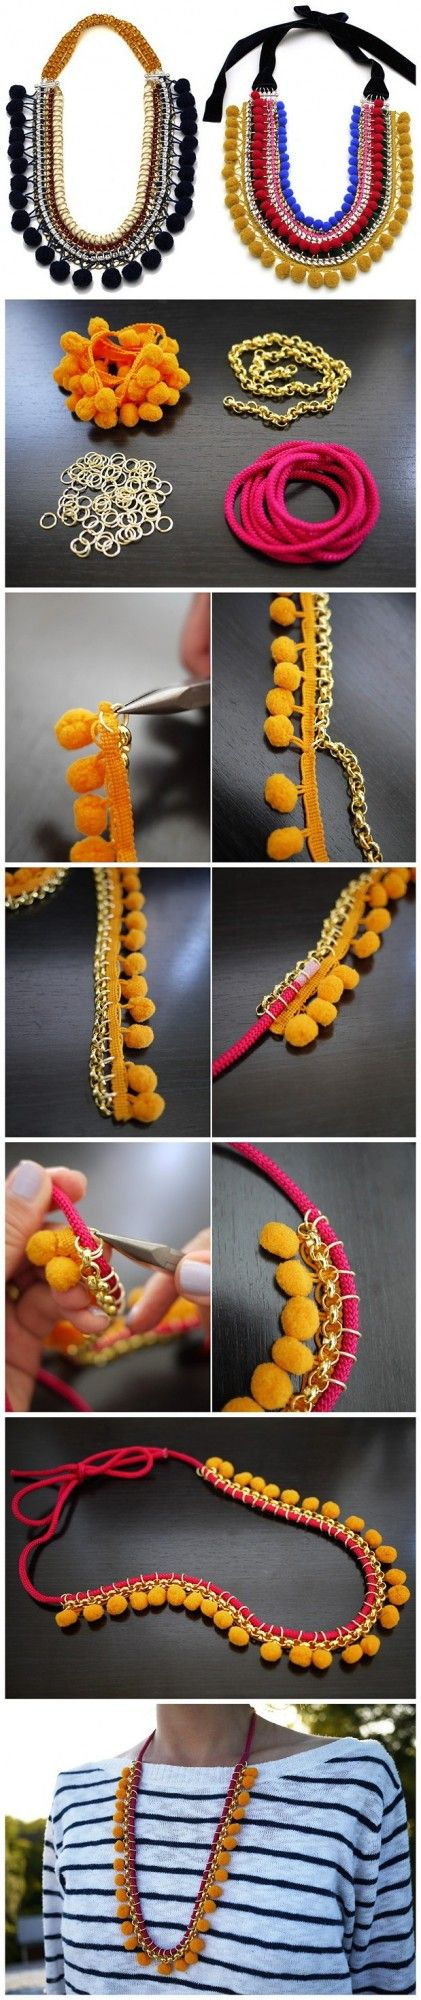 diy ideas to make your own statement necklace its absolutely